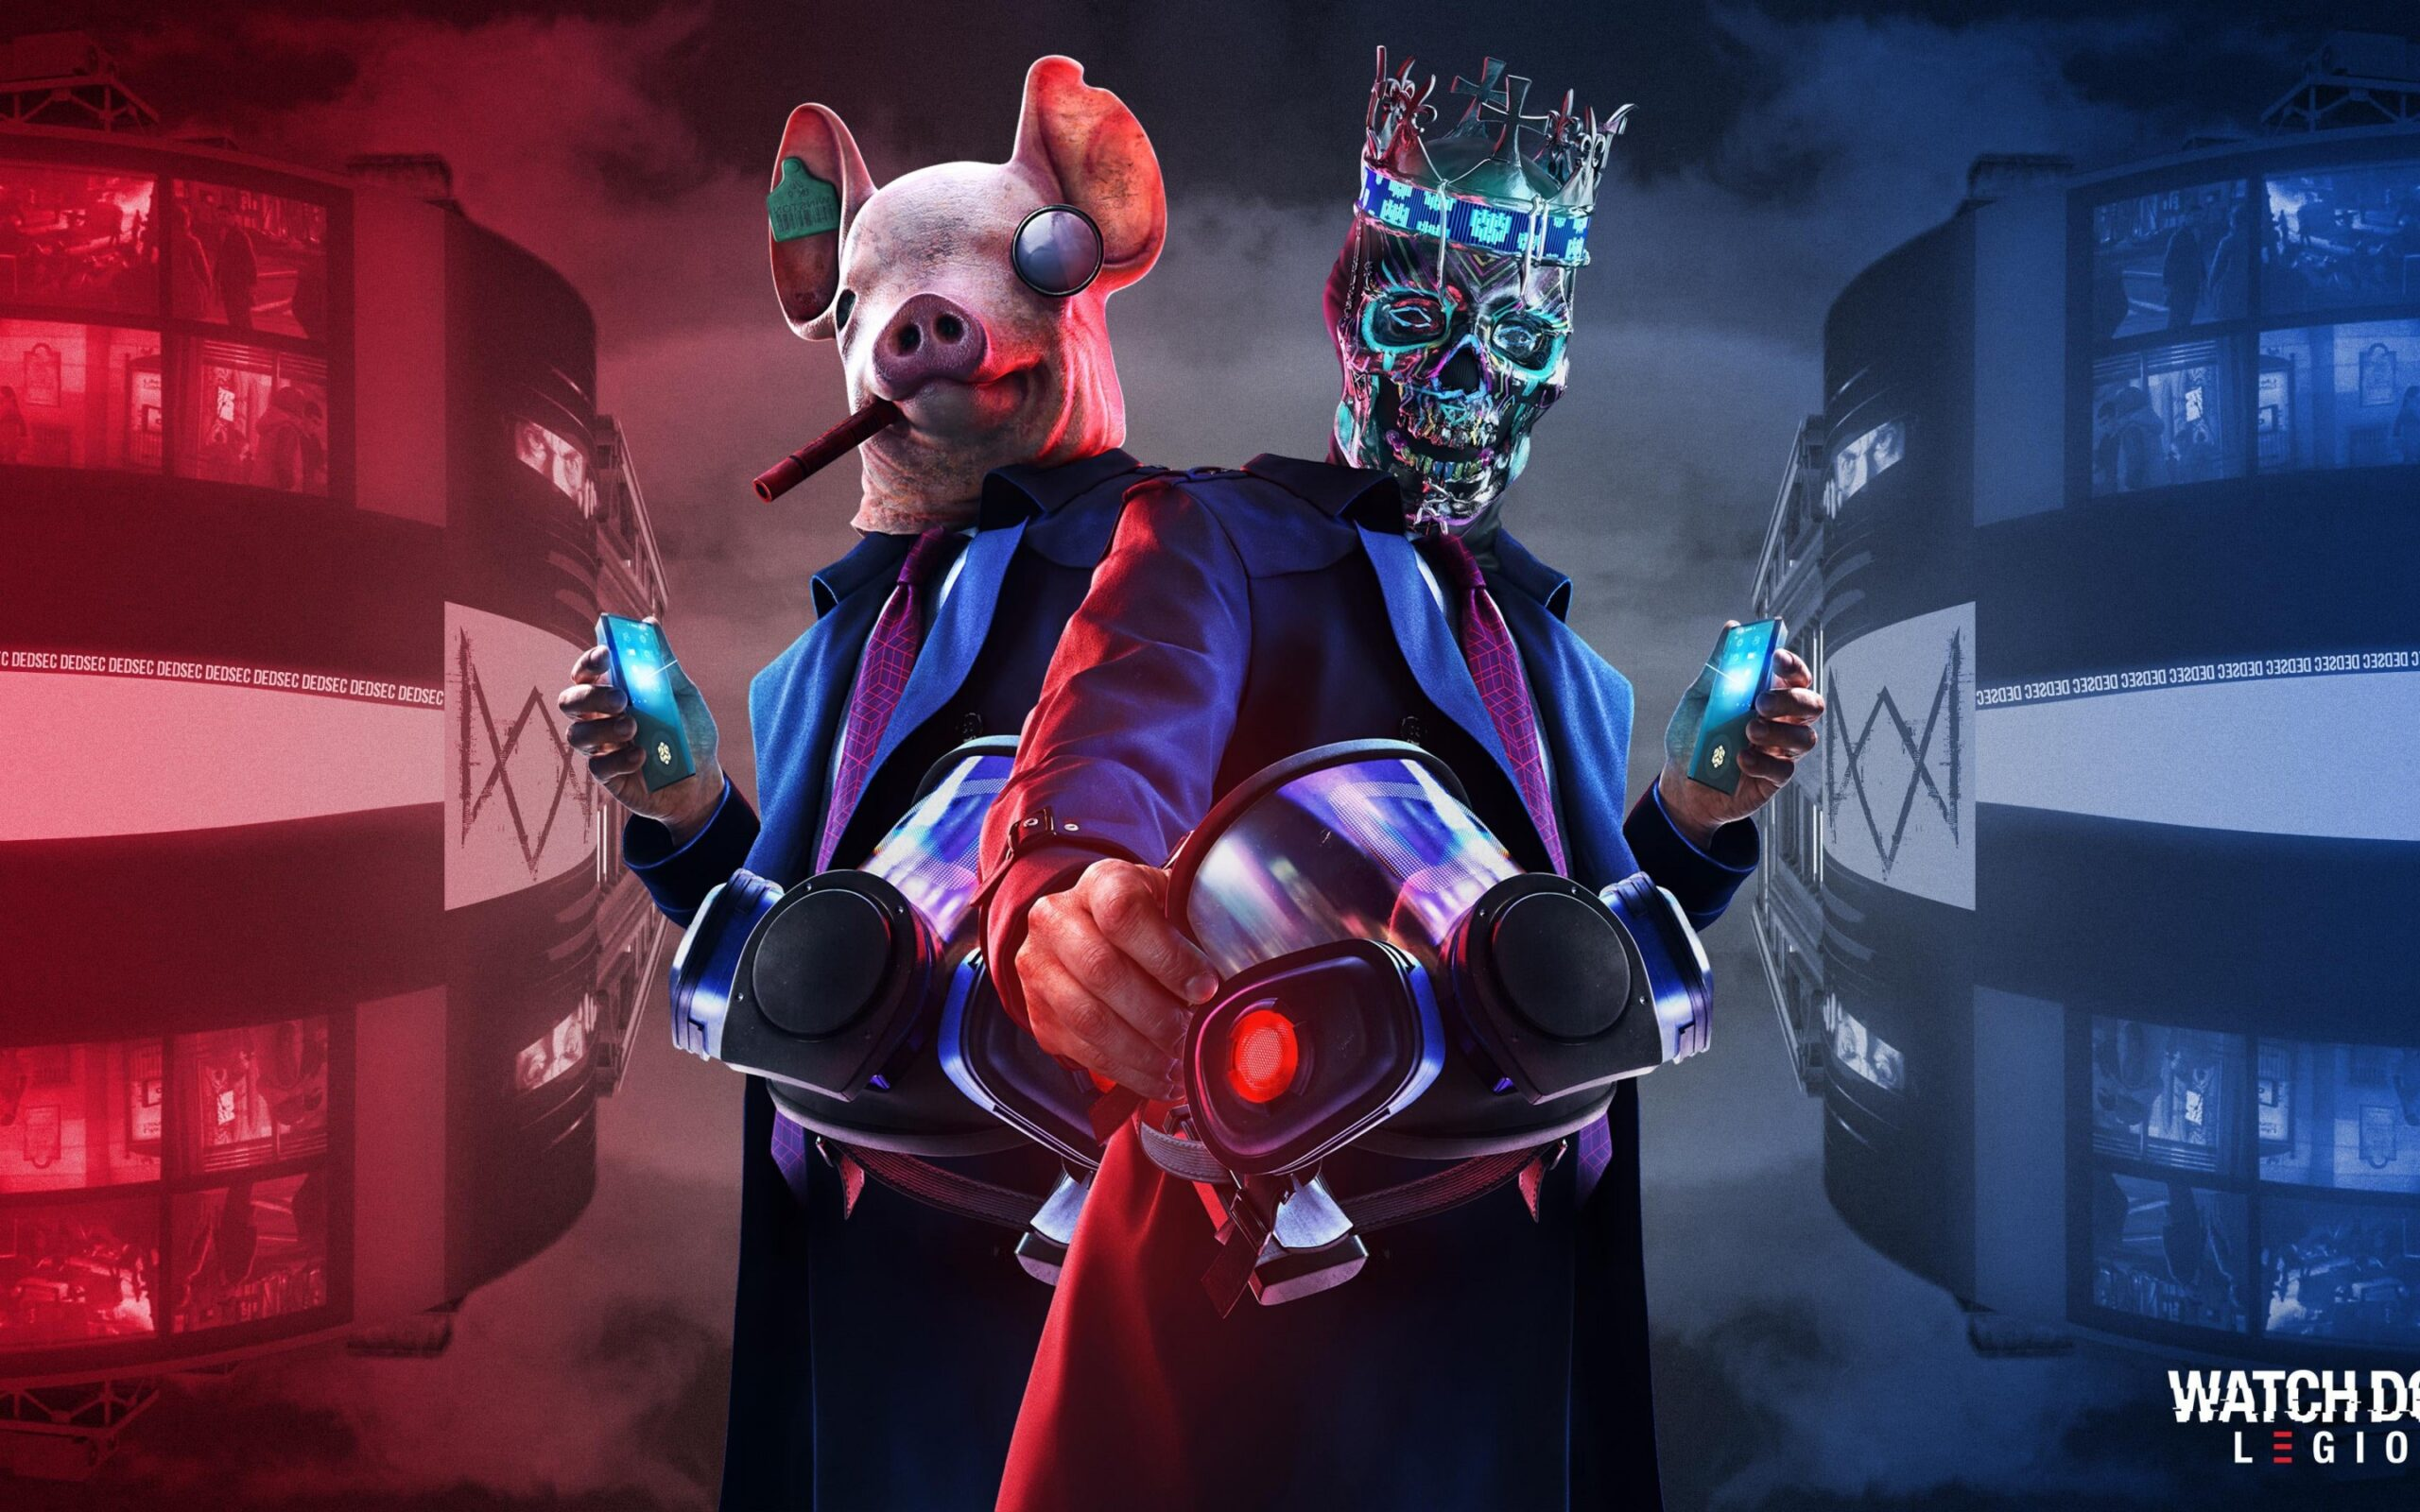 watch dogs legion ded coronet mask pig mask playstation 5 2880x1800 673 scaled